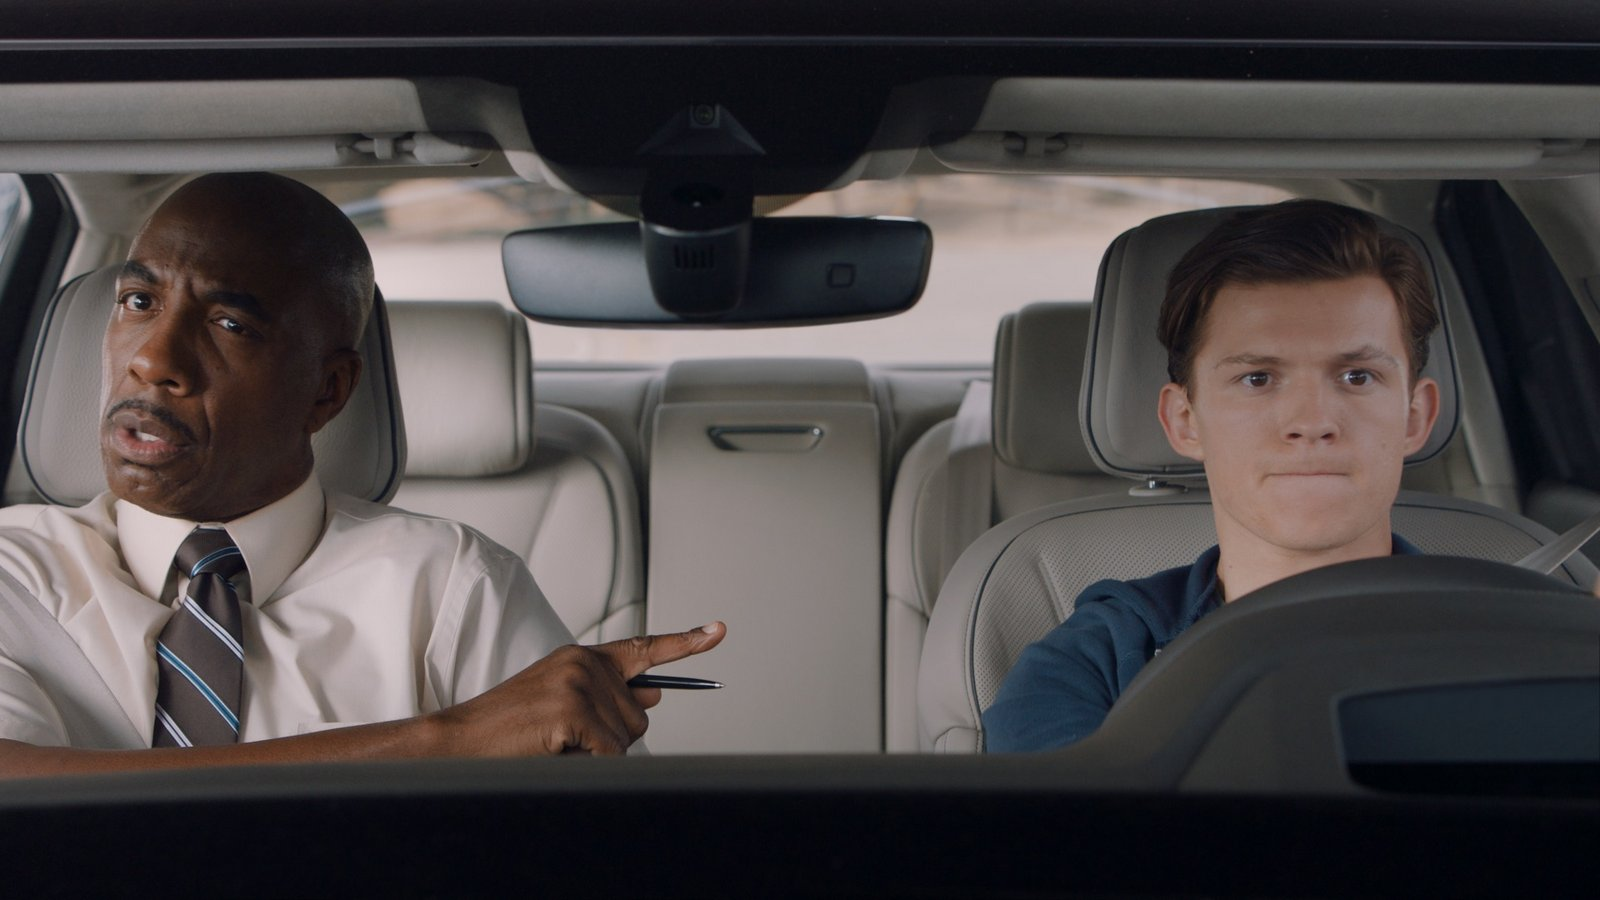 Spiderman Takes Road Test In New Audi A8